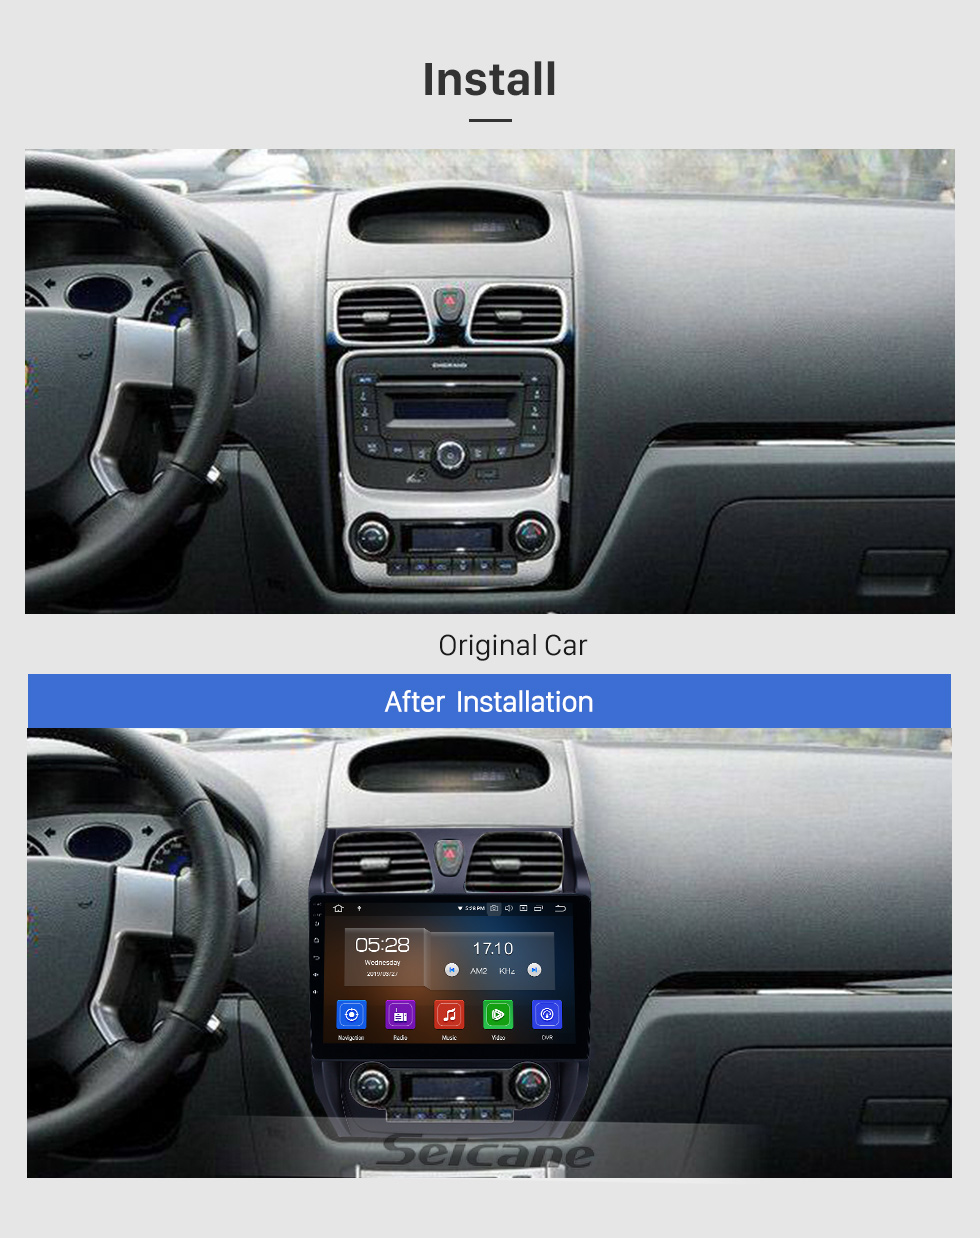 Seicane 10,1 pouces 2012-2013 Geely Emgrand EC7 Android 9.0 Radio de navigation GPS Bluetooth HD écran tactile support Carplay Miroir Lien